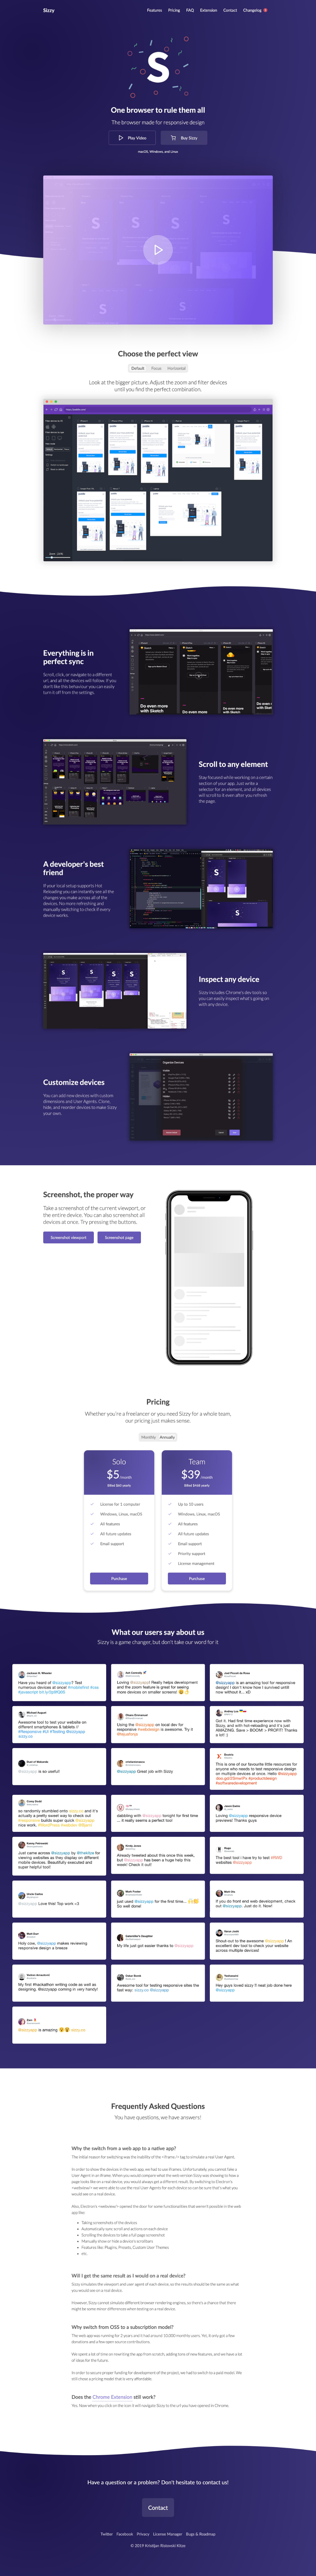 Faqcreate A Dedicated Faq Section Or Page